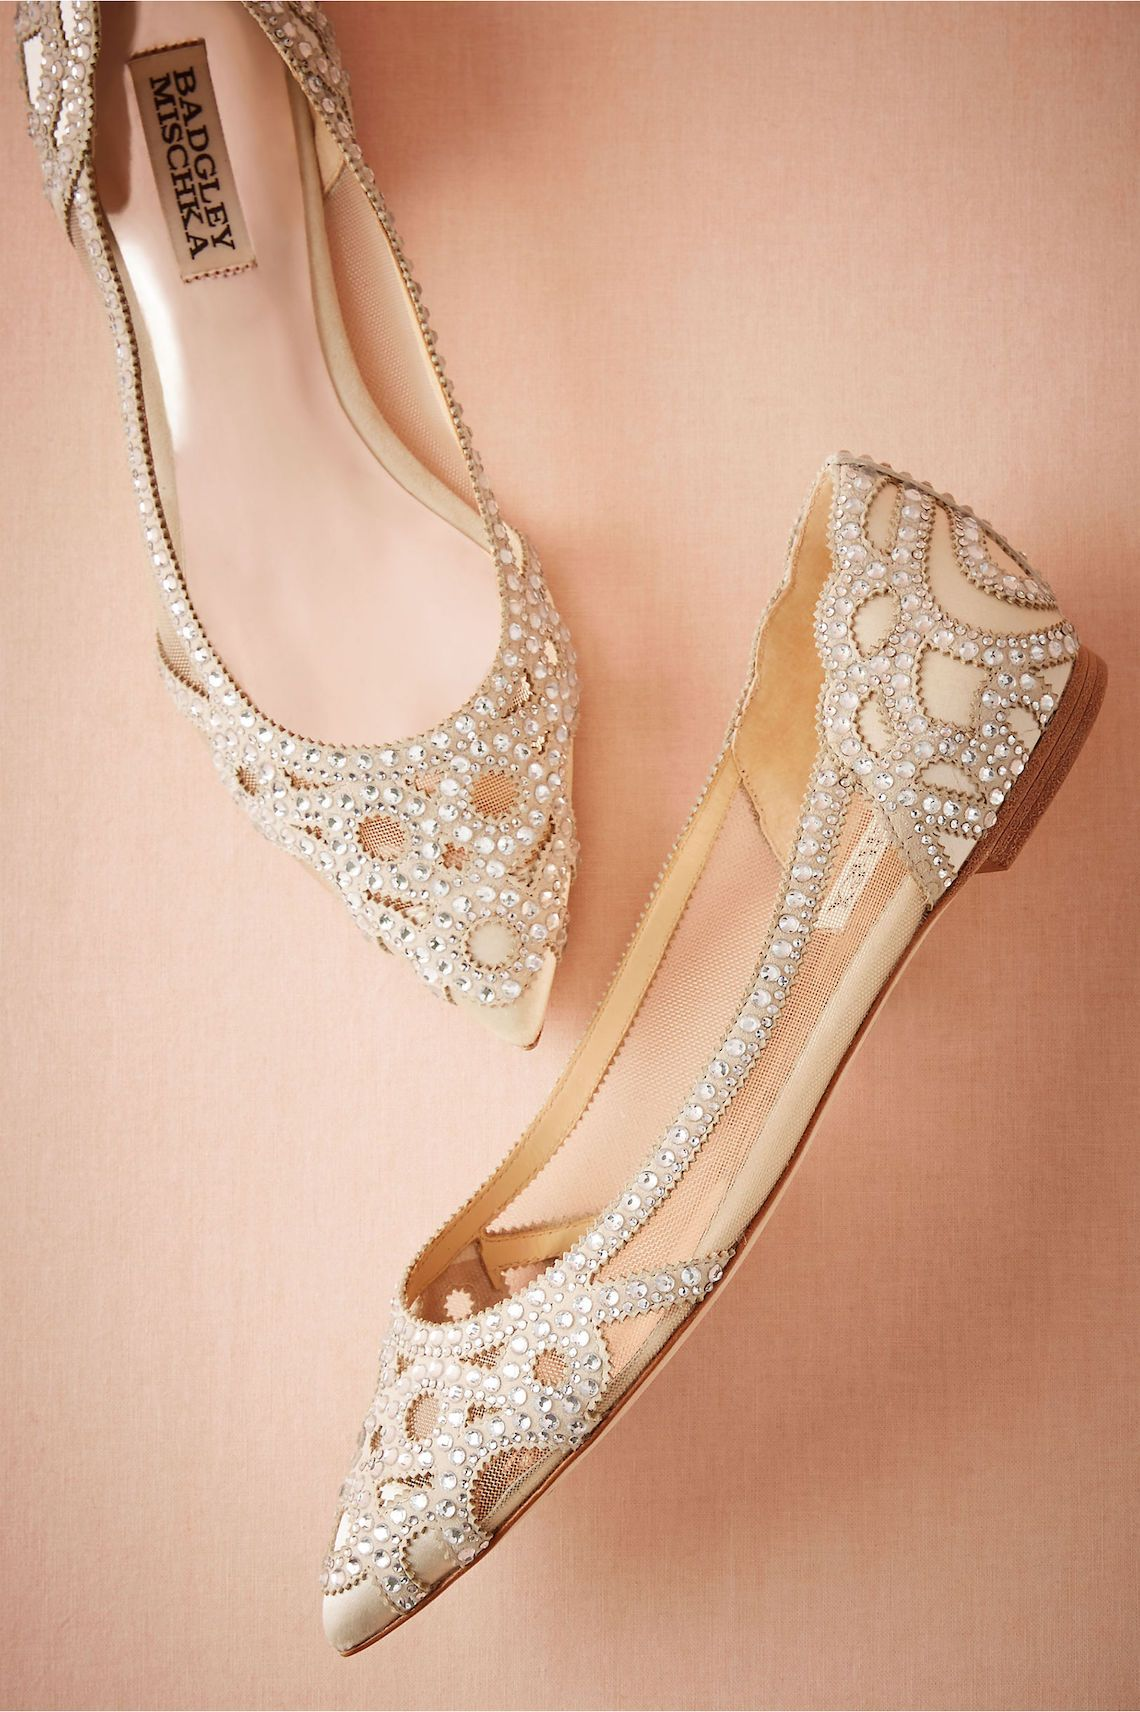 5cb5d152a60 10 Flat Wedding Shoes (That Are Just As Chic As Heels)